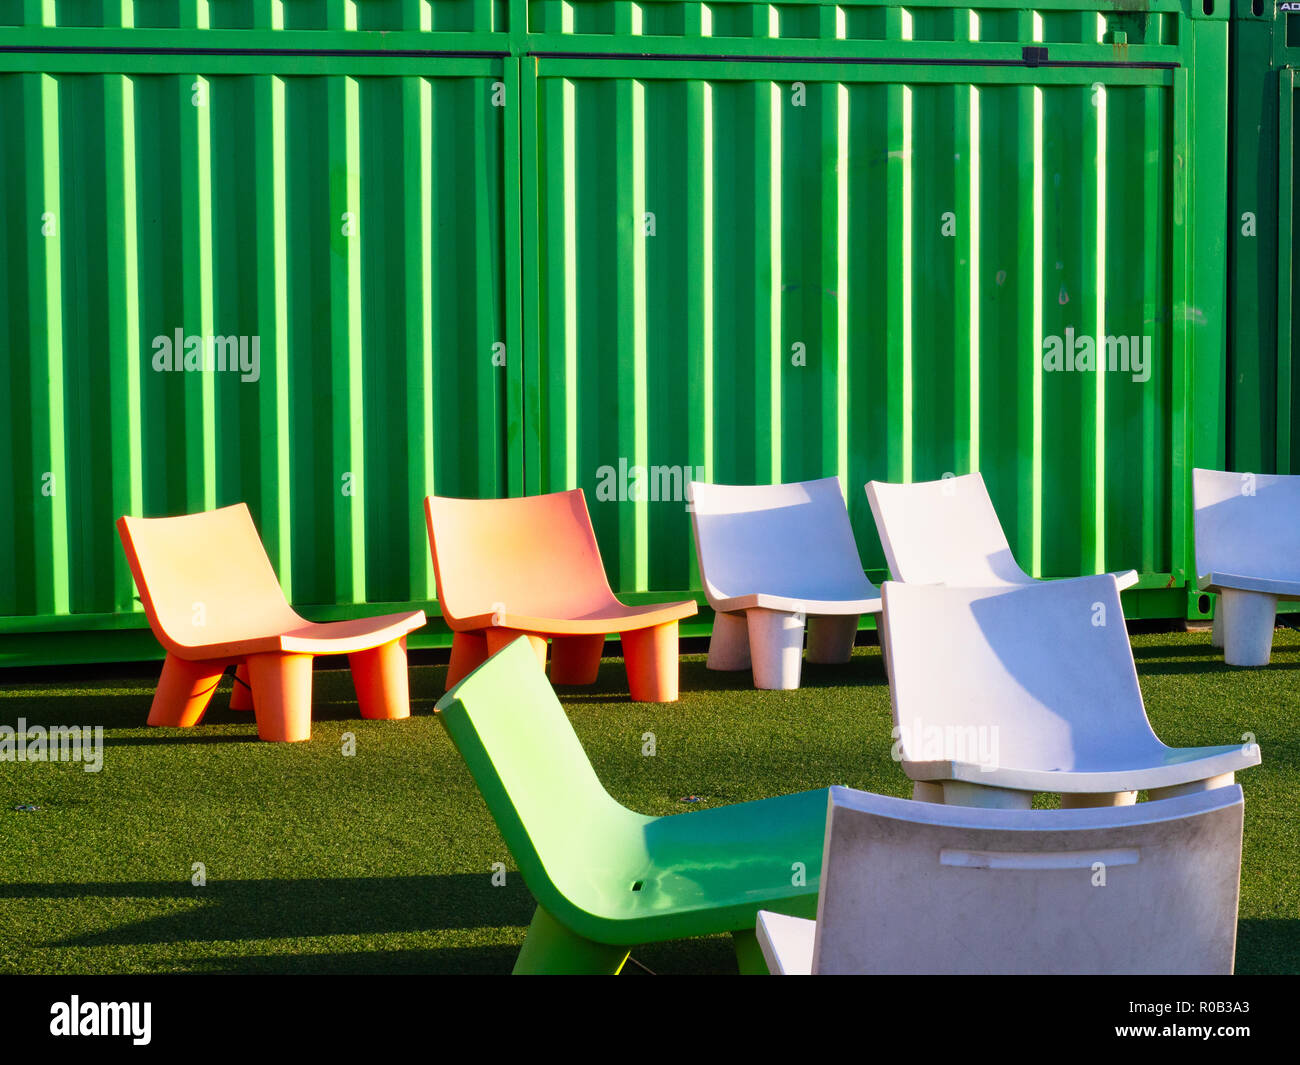 Colourful Chairs In A Public Space - Stock Image